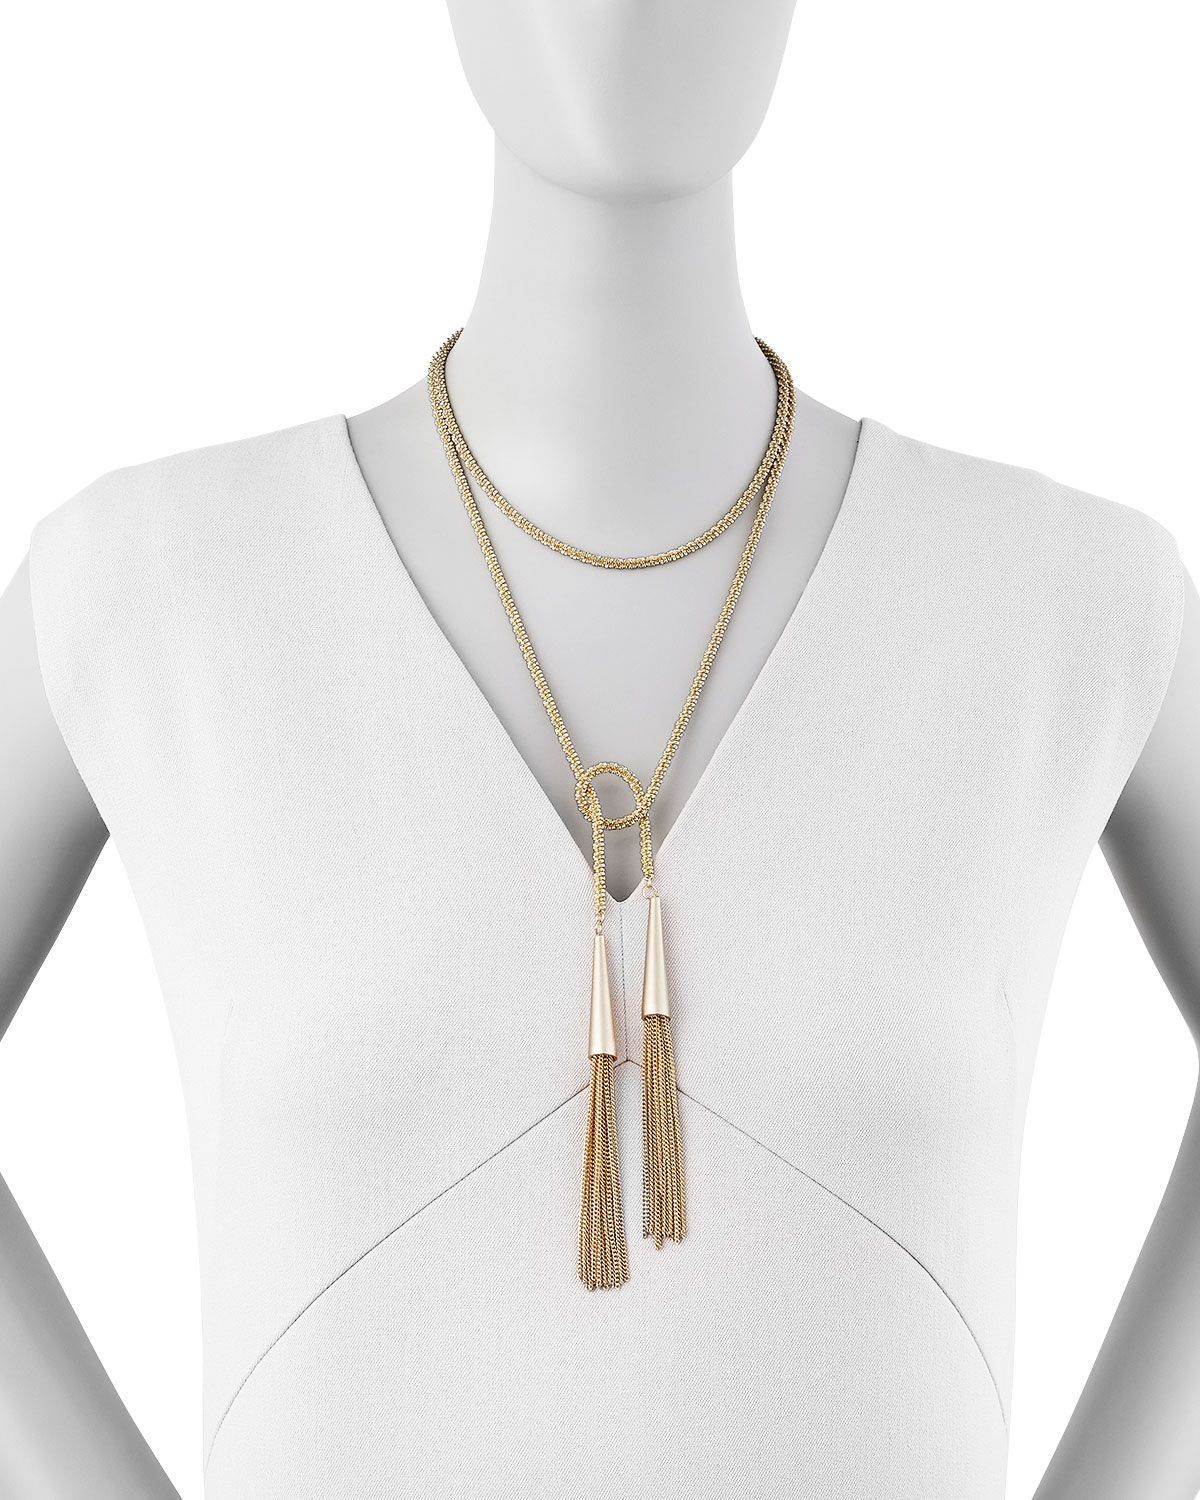 Kendra Scott Phara Gold-Plated Double-Wrap Necklace EXAoBx57l